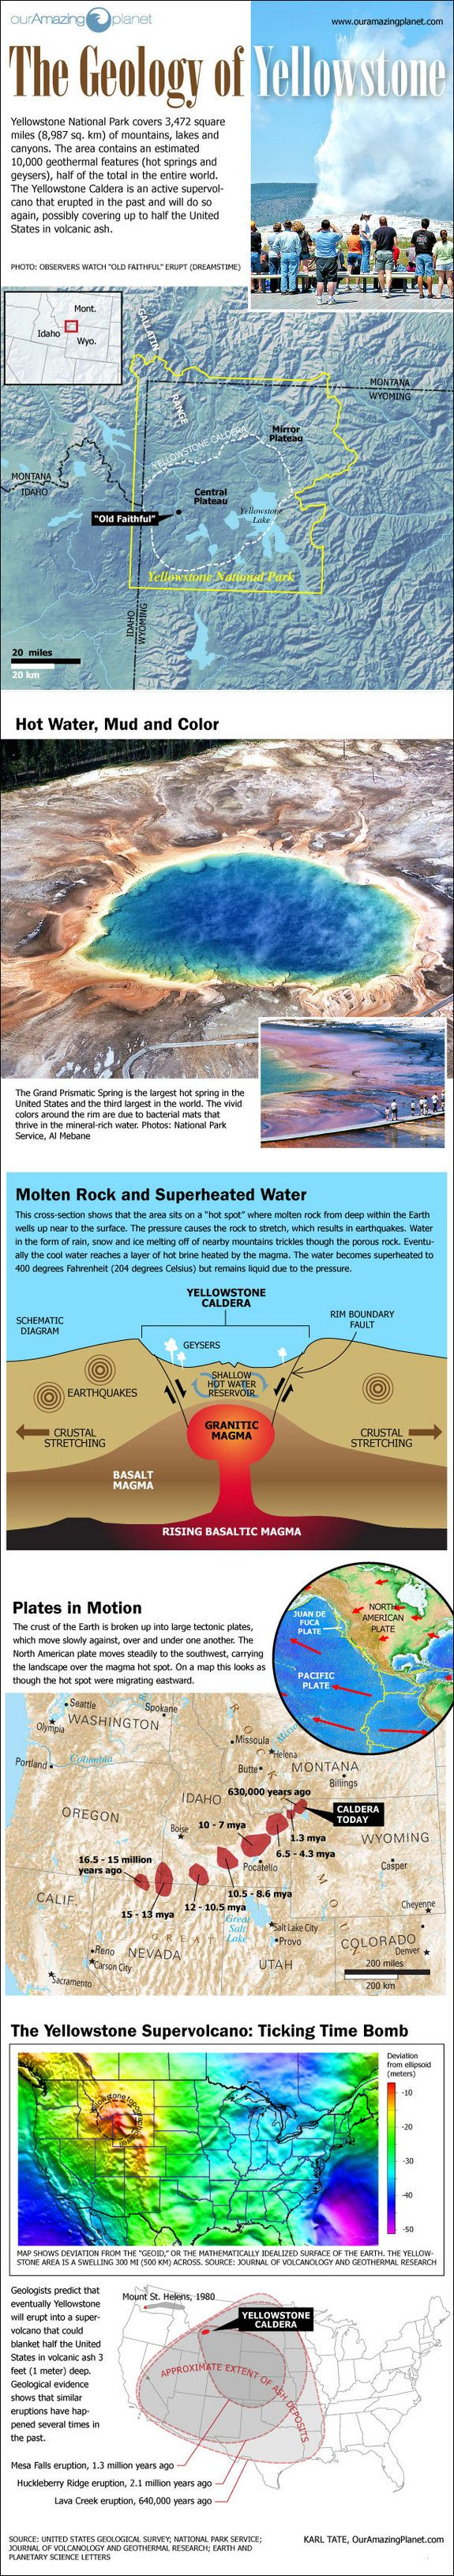 Infographic: The Geology of Yellowstone  --  Karl Tate, OurAmazingPlanet Infographic Artist